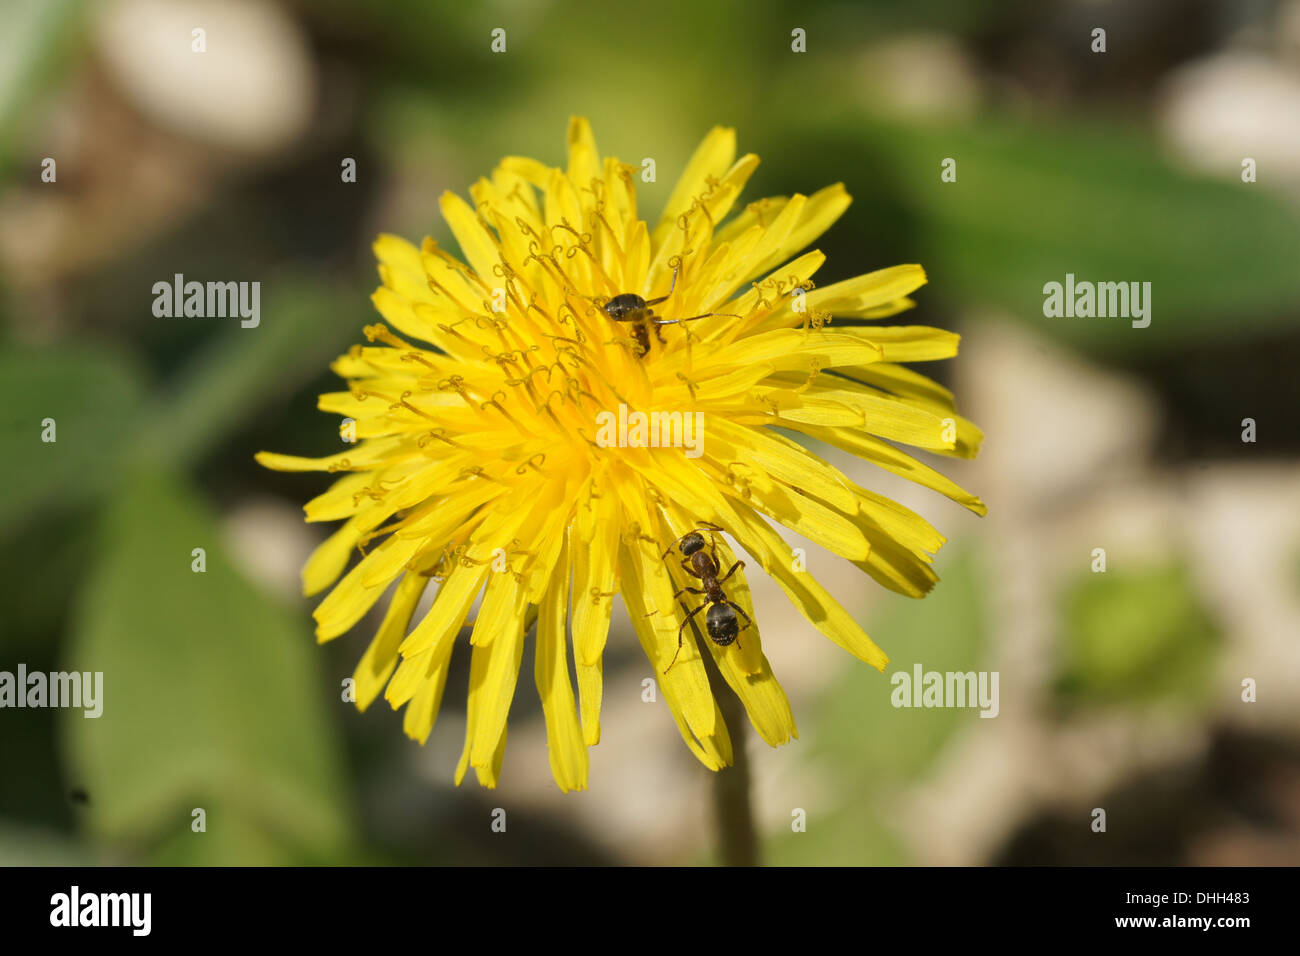 Dandelion, flower with ants - Stock Image